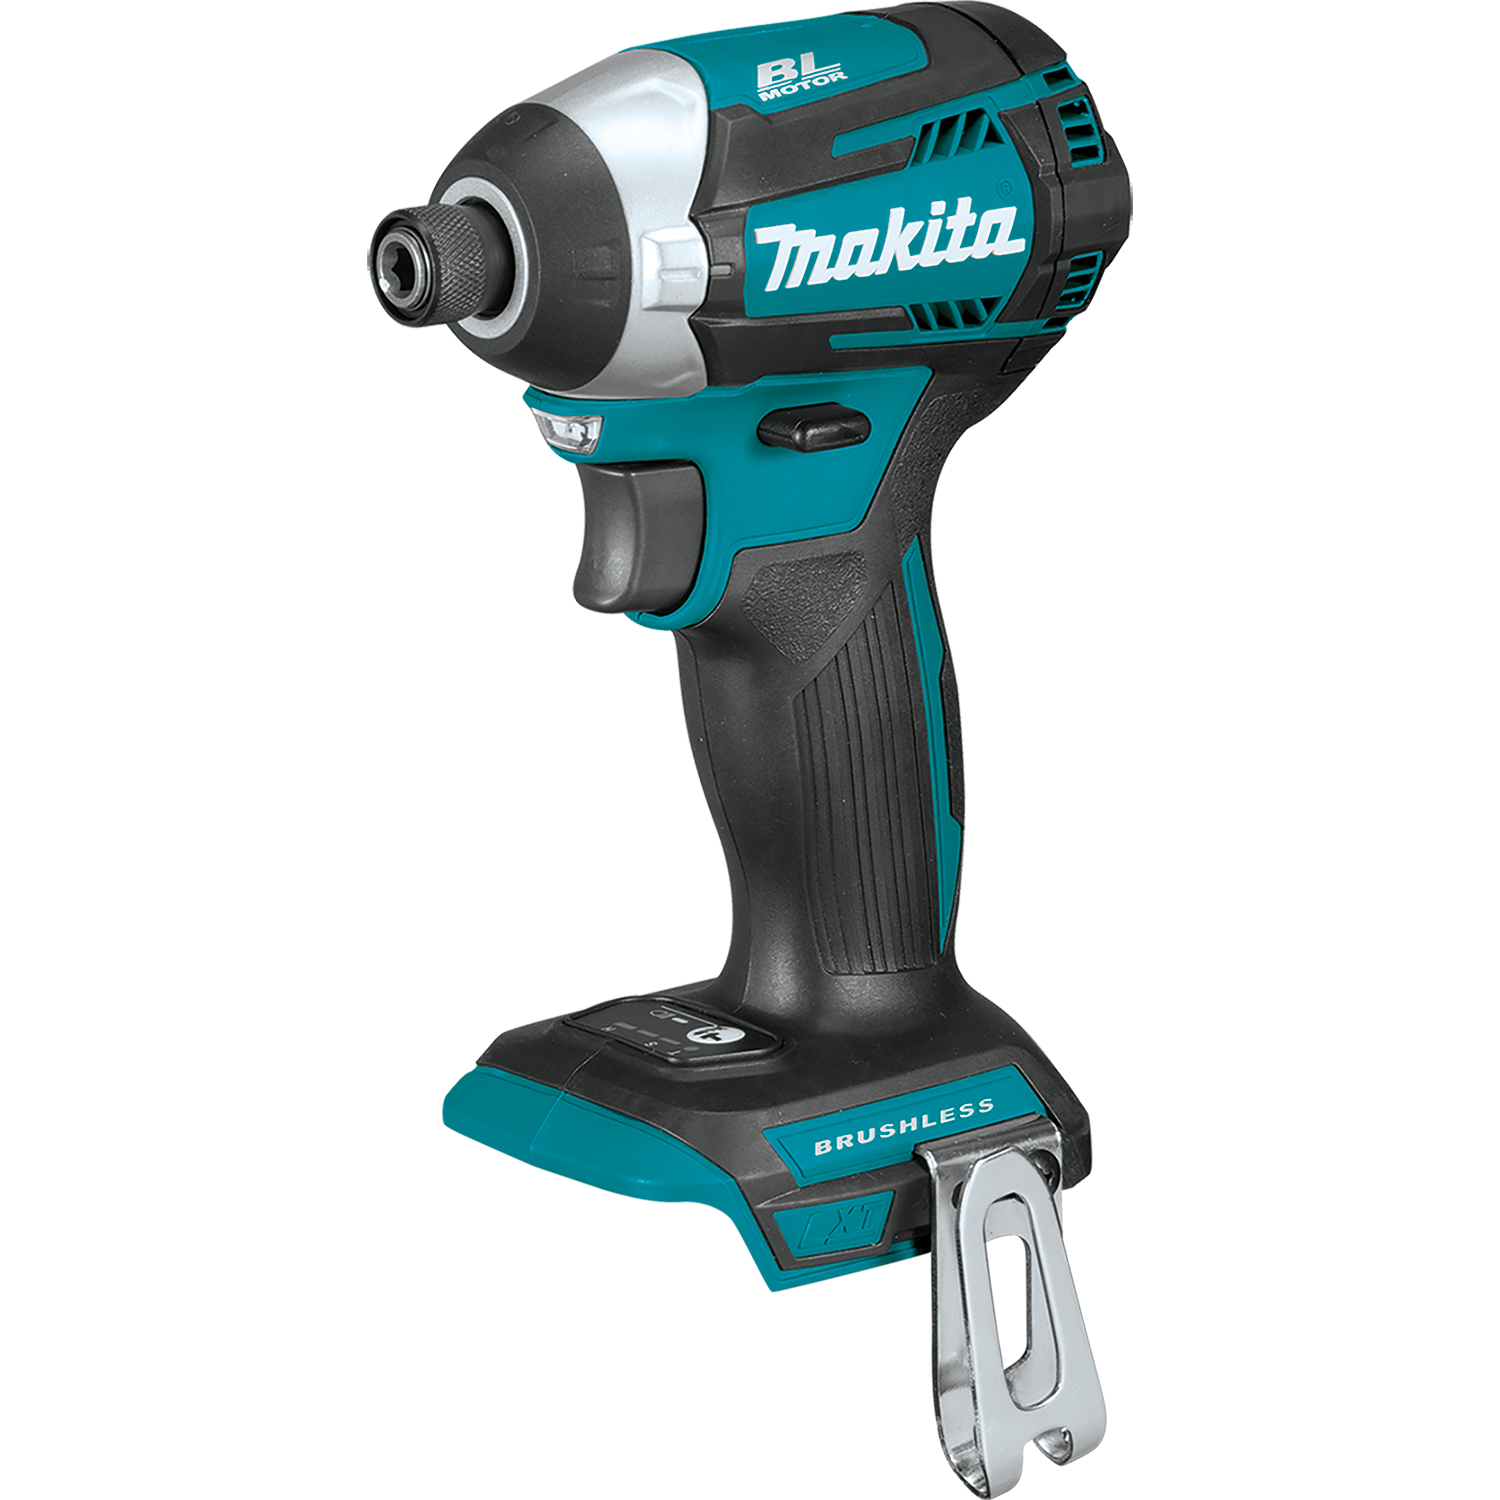 Makita 18-Volt LXT Lithium-Ion Brushless 1/4 in. 3-Speed Impact Driver (XDT14Z) + FREE 2.0Ah BATTERY (Hackable) - The Home Depot $129